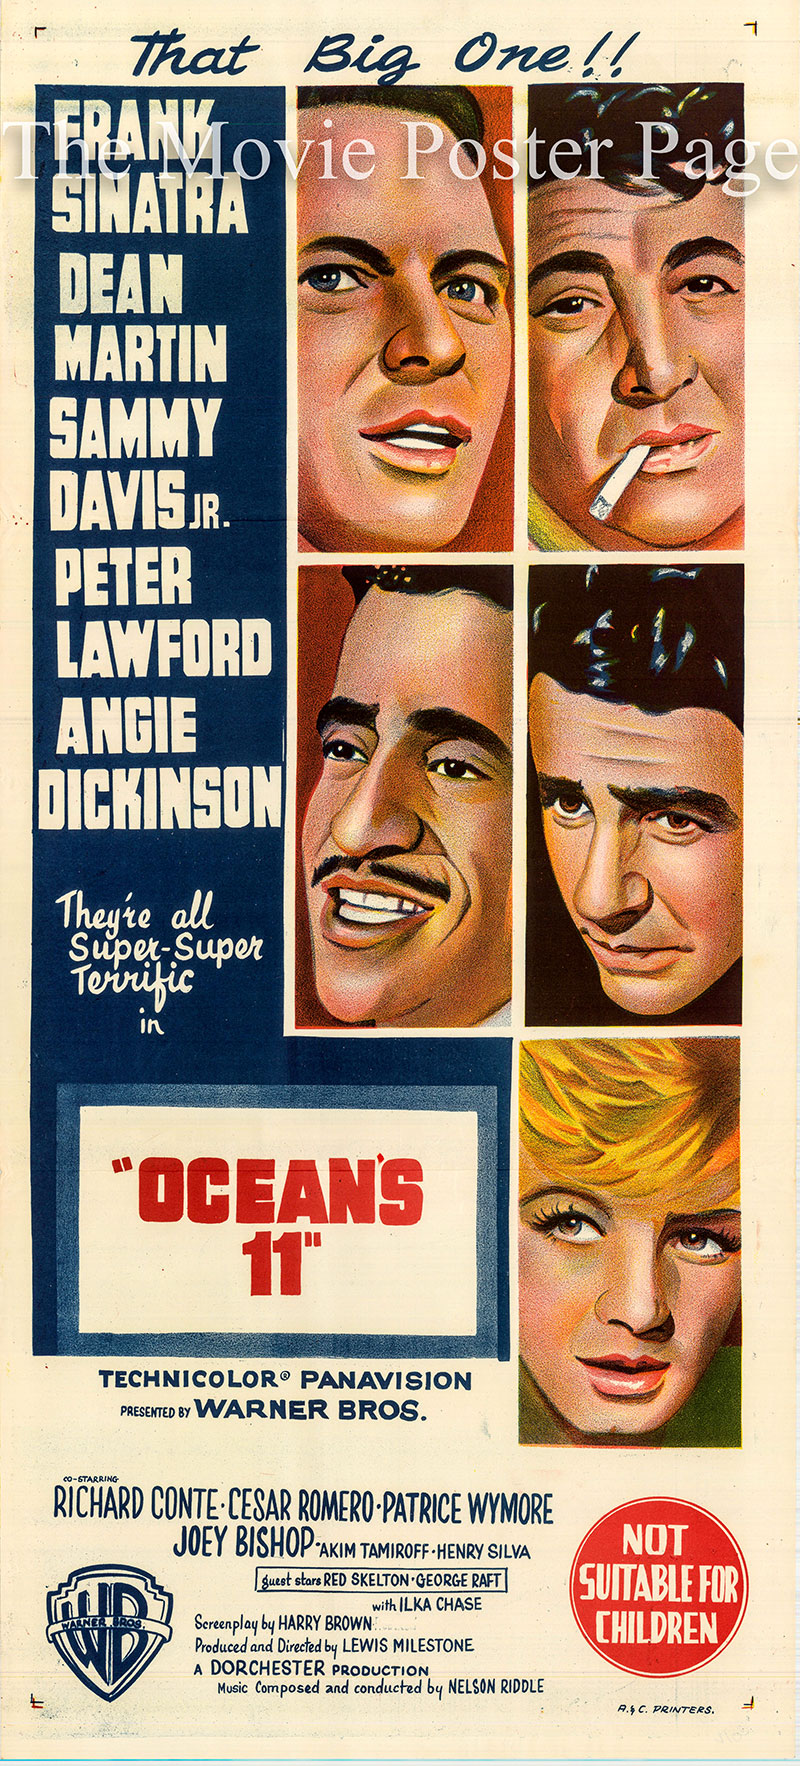 Pictured is an Australian daybill poster for the 1960 Lewis Milestone film Ocean's 11 starring Frank Sinatra as Danny Ocean.